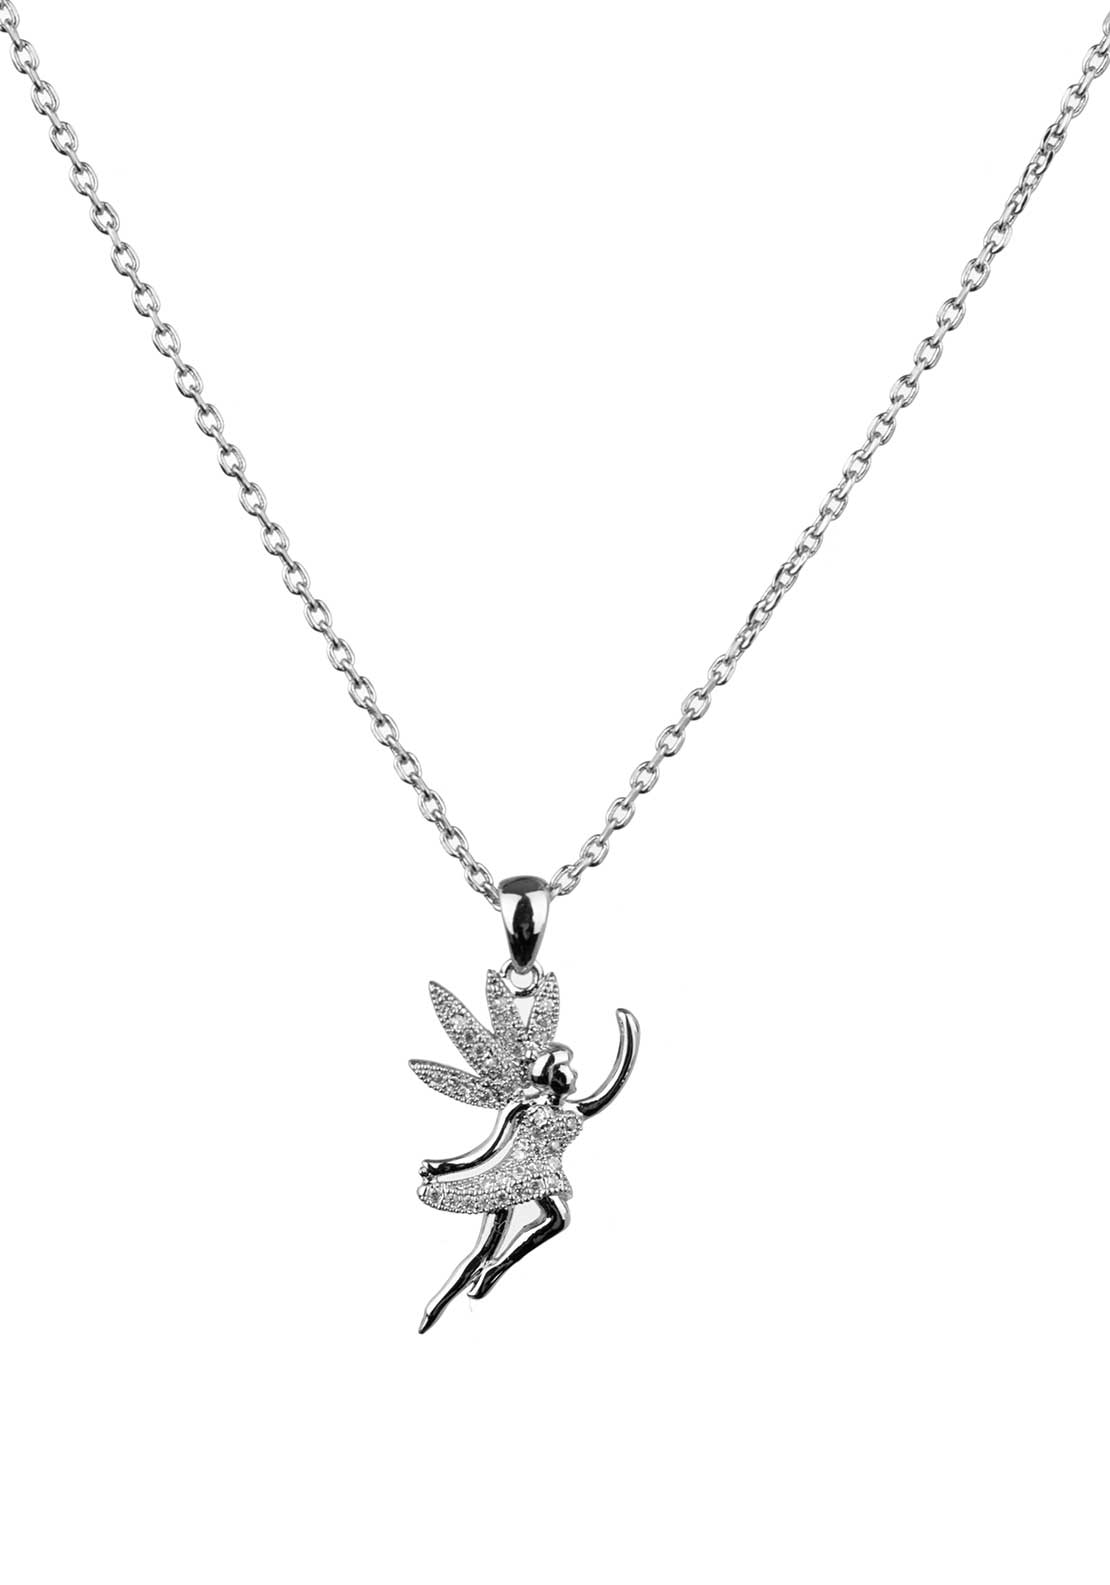 Absolute Jewellery Girls Pave Studded Fairy Pendant Necklace, Silver